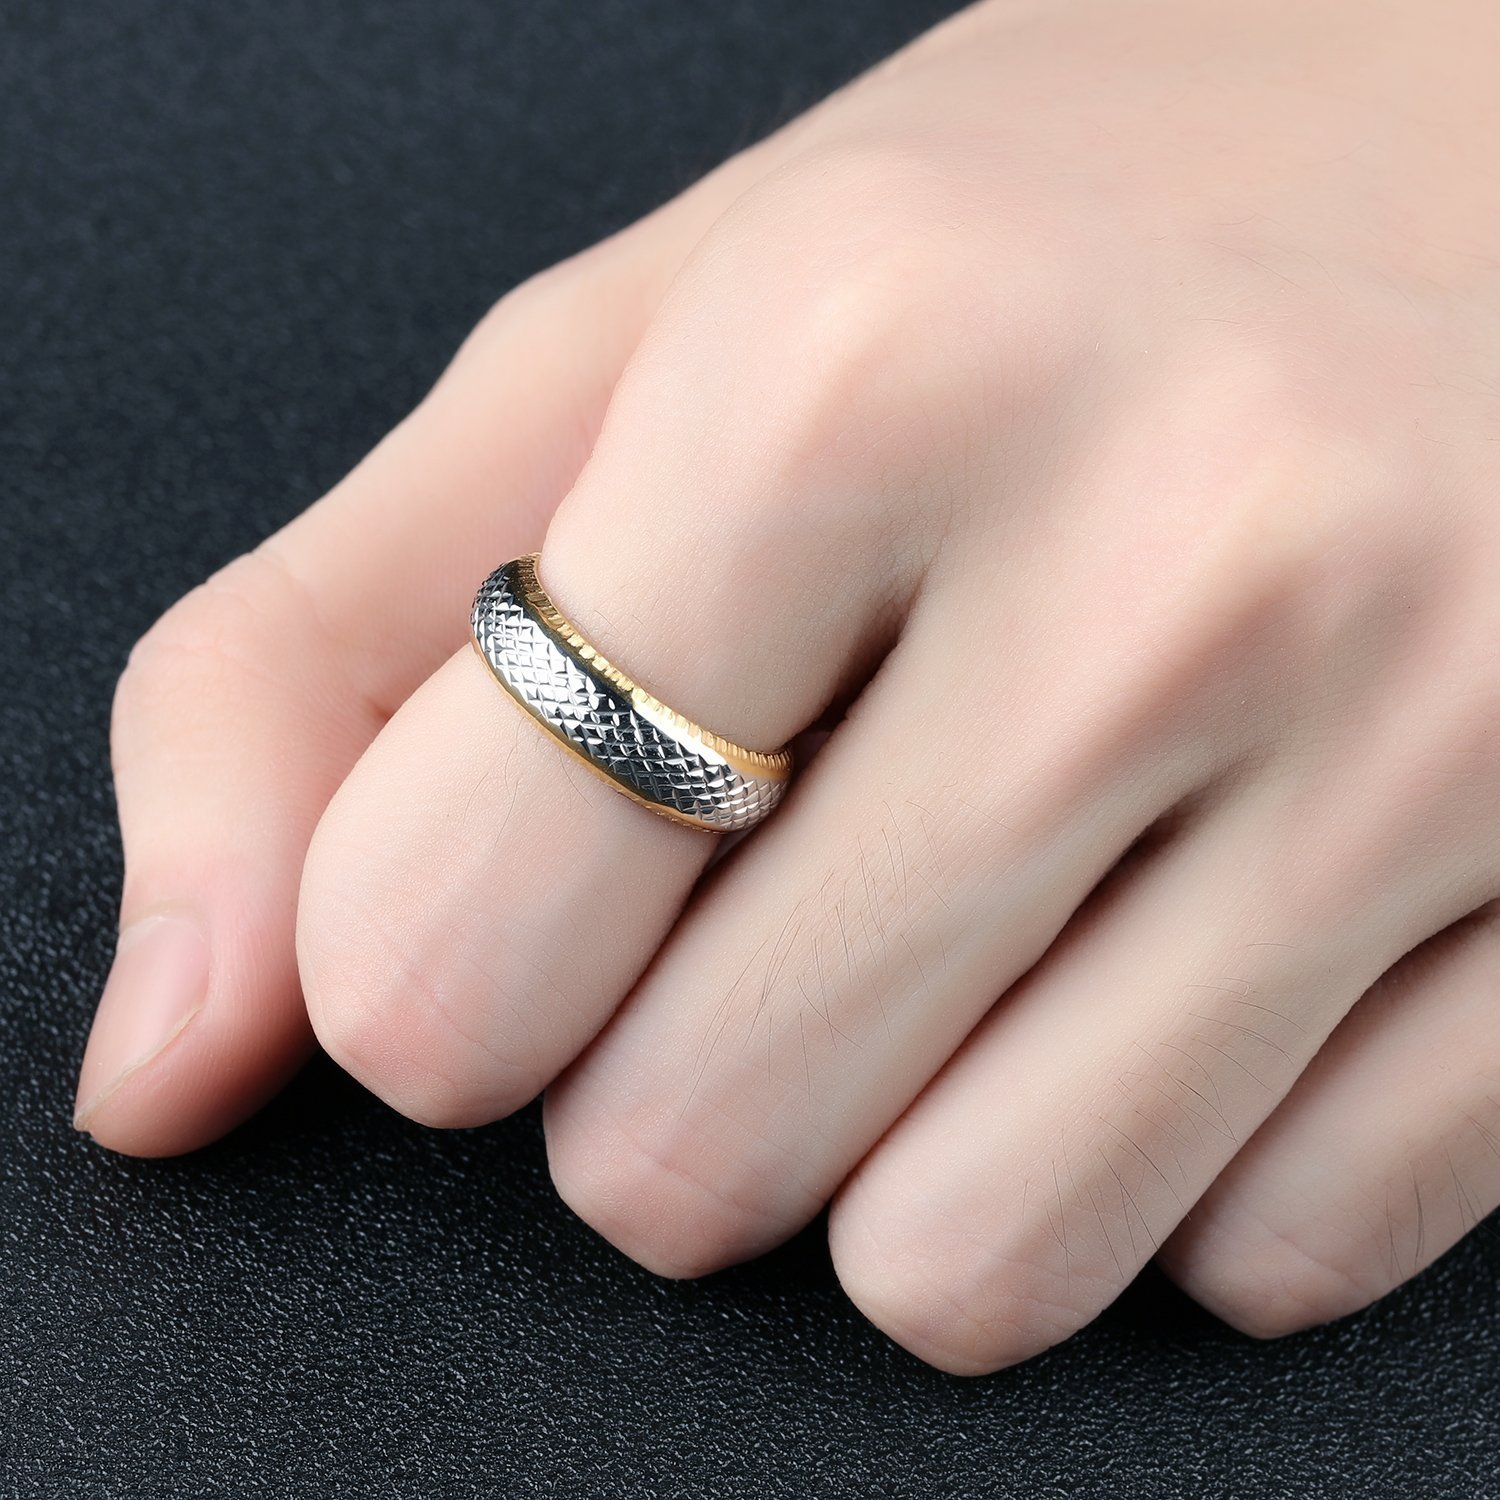 JAJAFOOK Sliver/Gold Tone Stainless Steel Vintage Tail Ring Charm ...